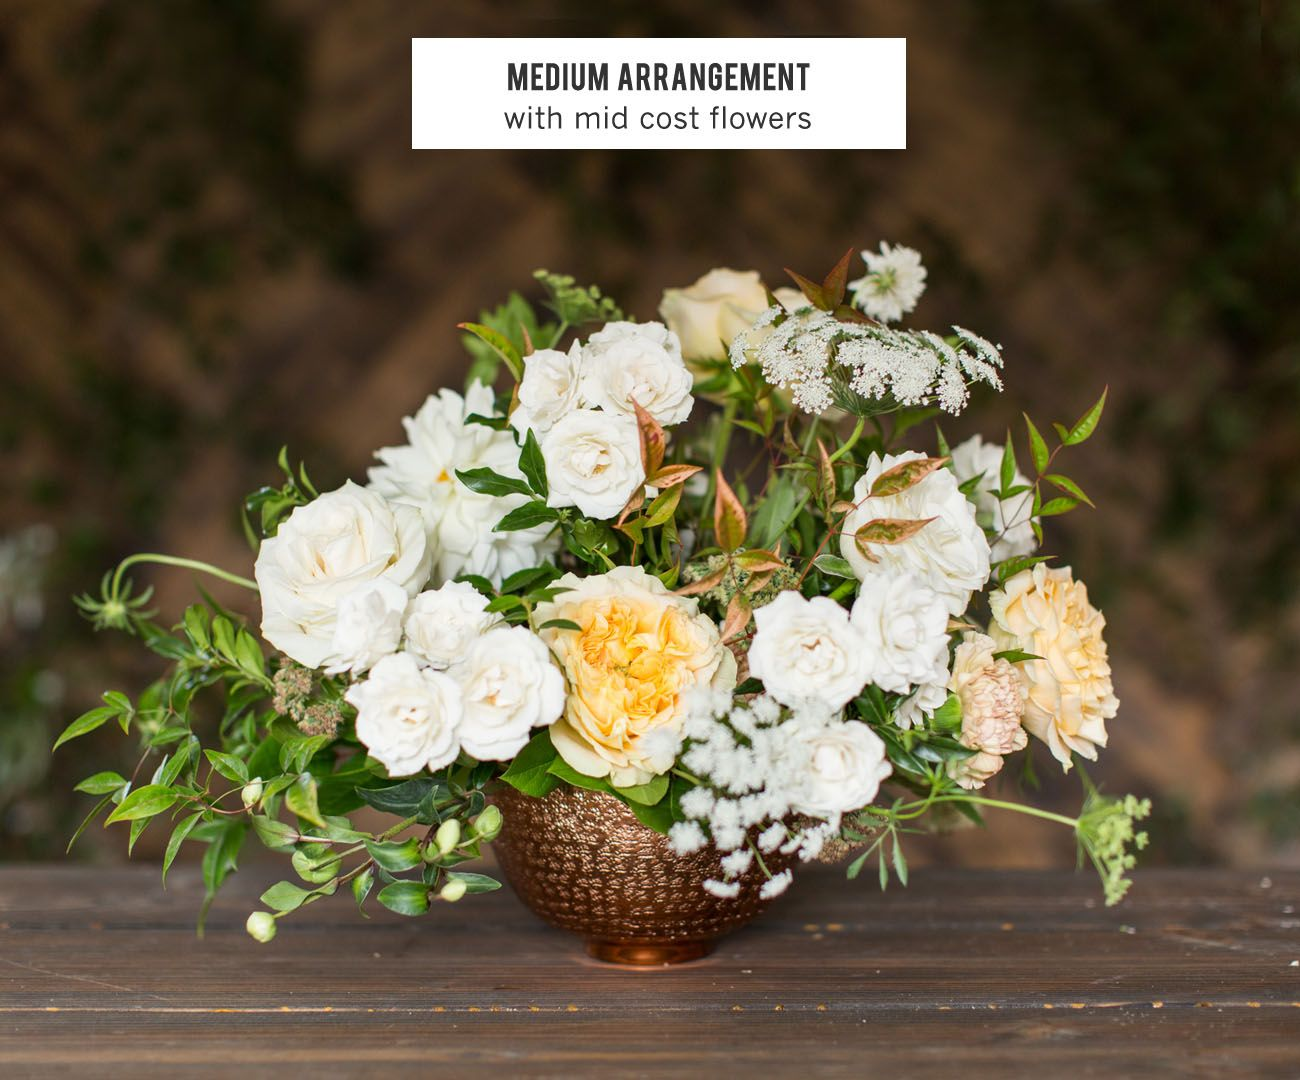 Wedding Planning Tips Budgeting for Centerpieces Green